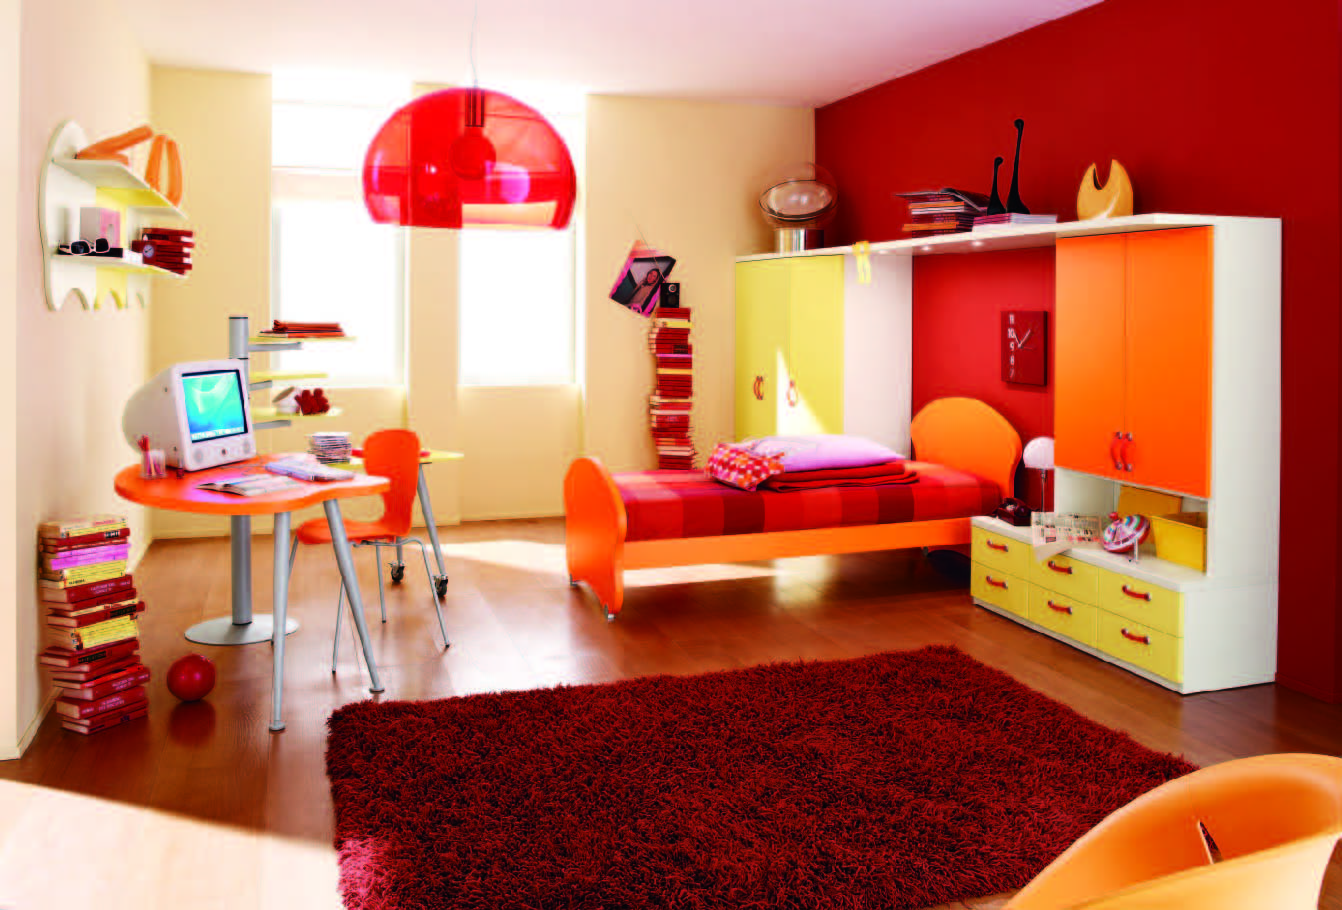 Nice room colors for girls - Like Architecture